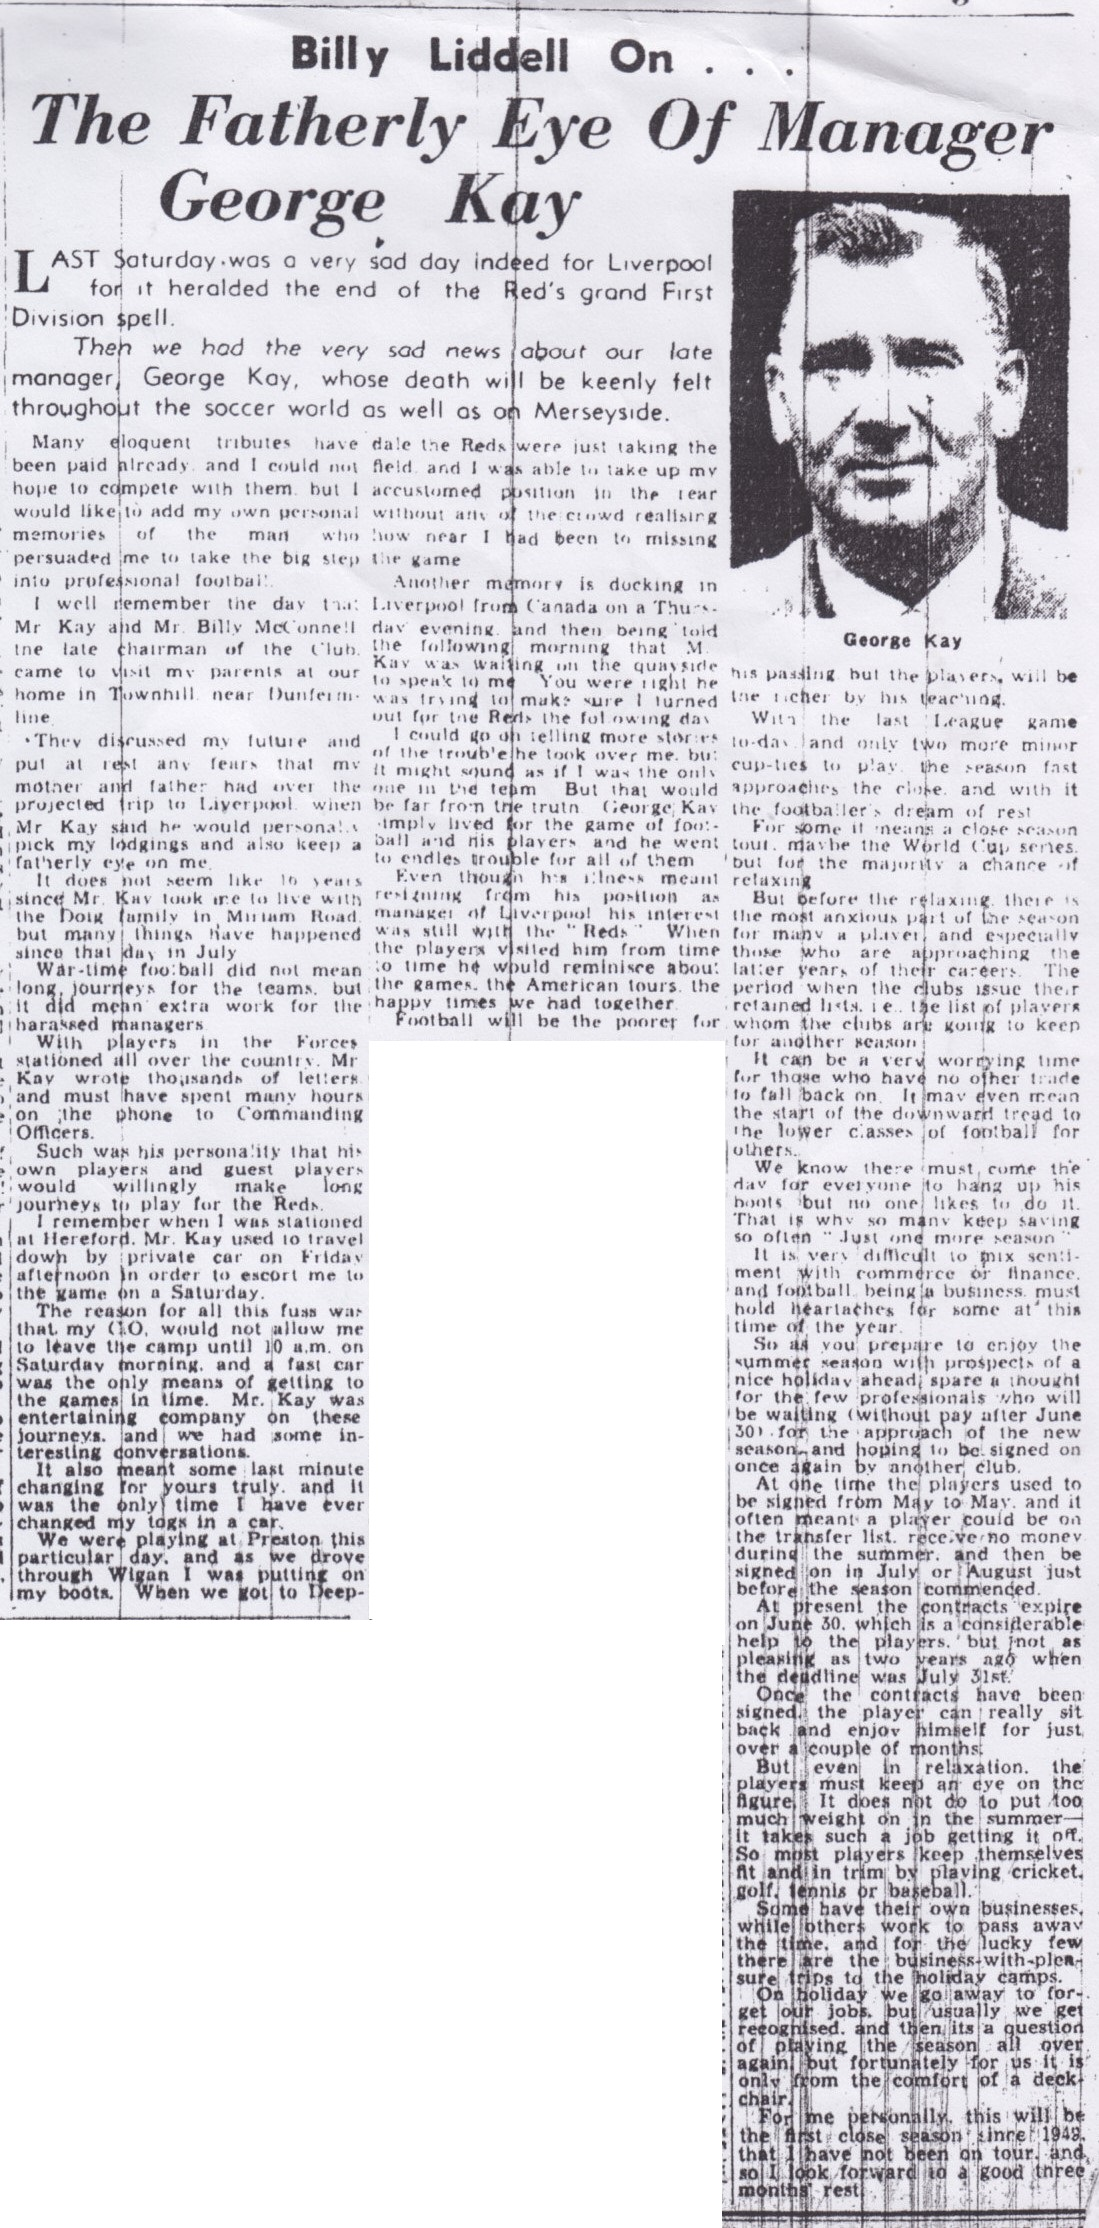 Billy Liddell on the fatherly eye of George Kay - April 1954